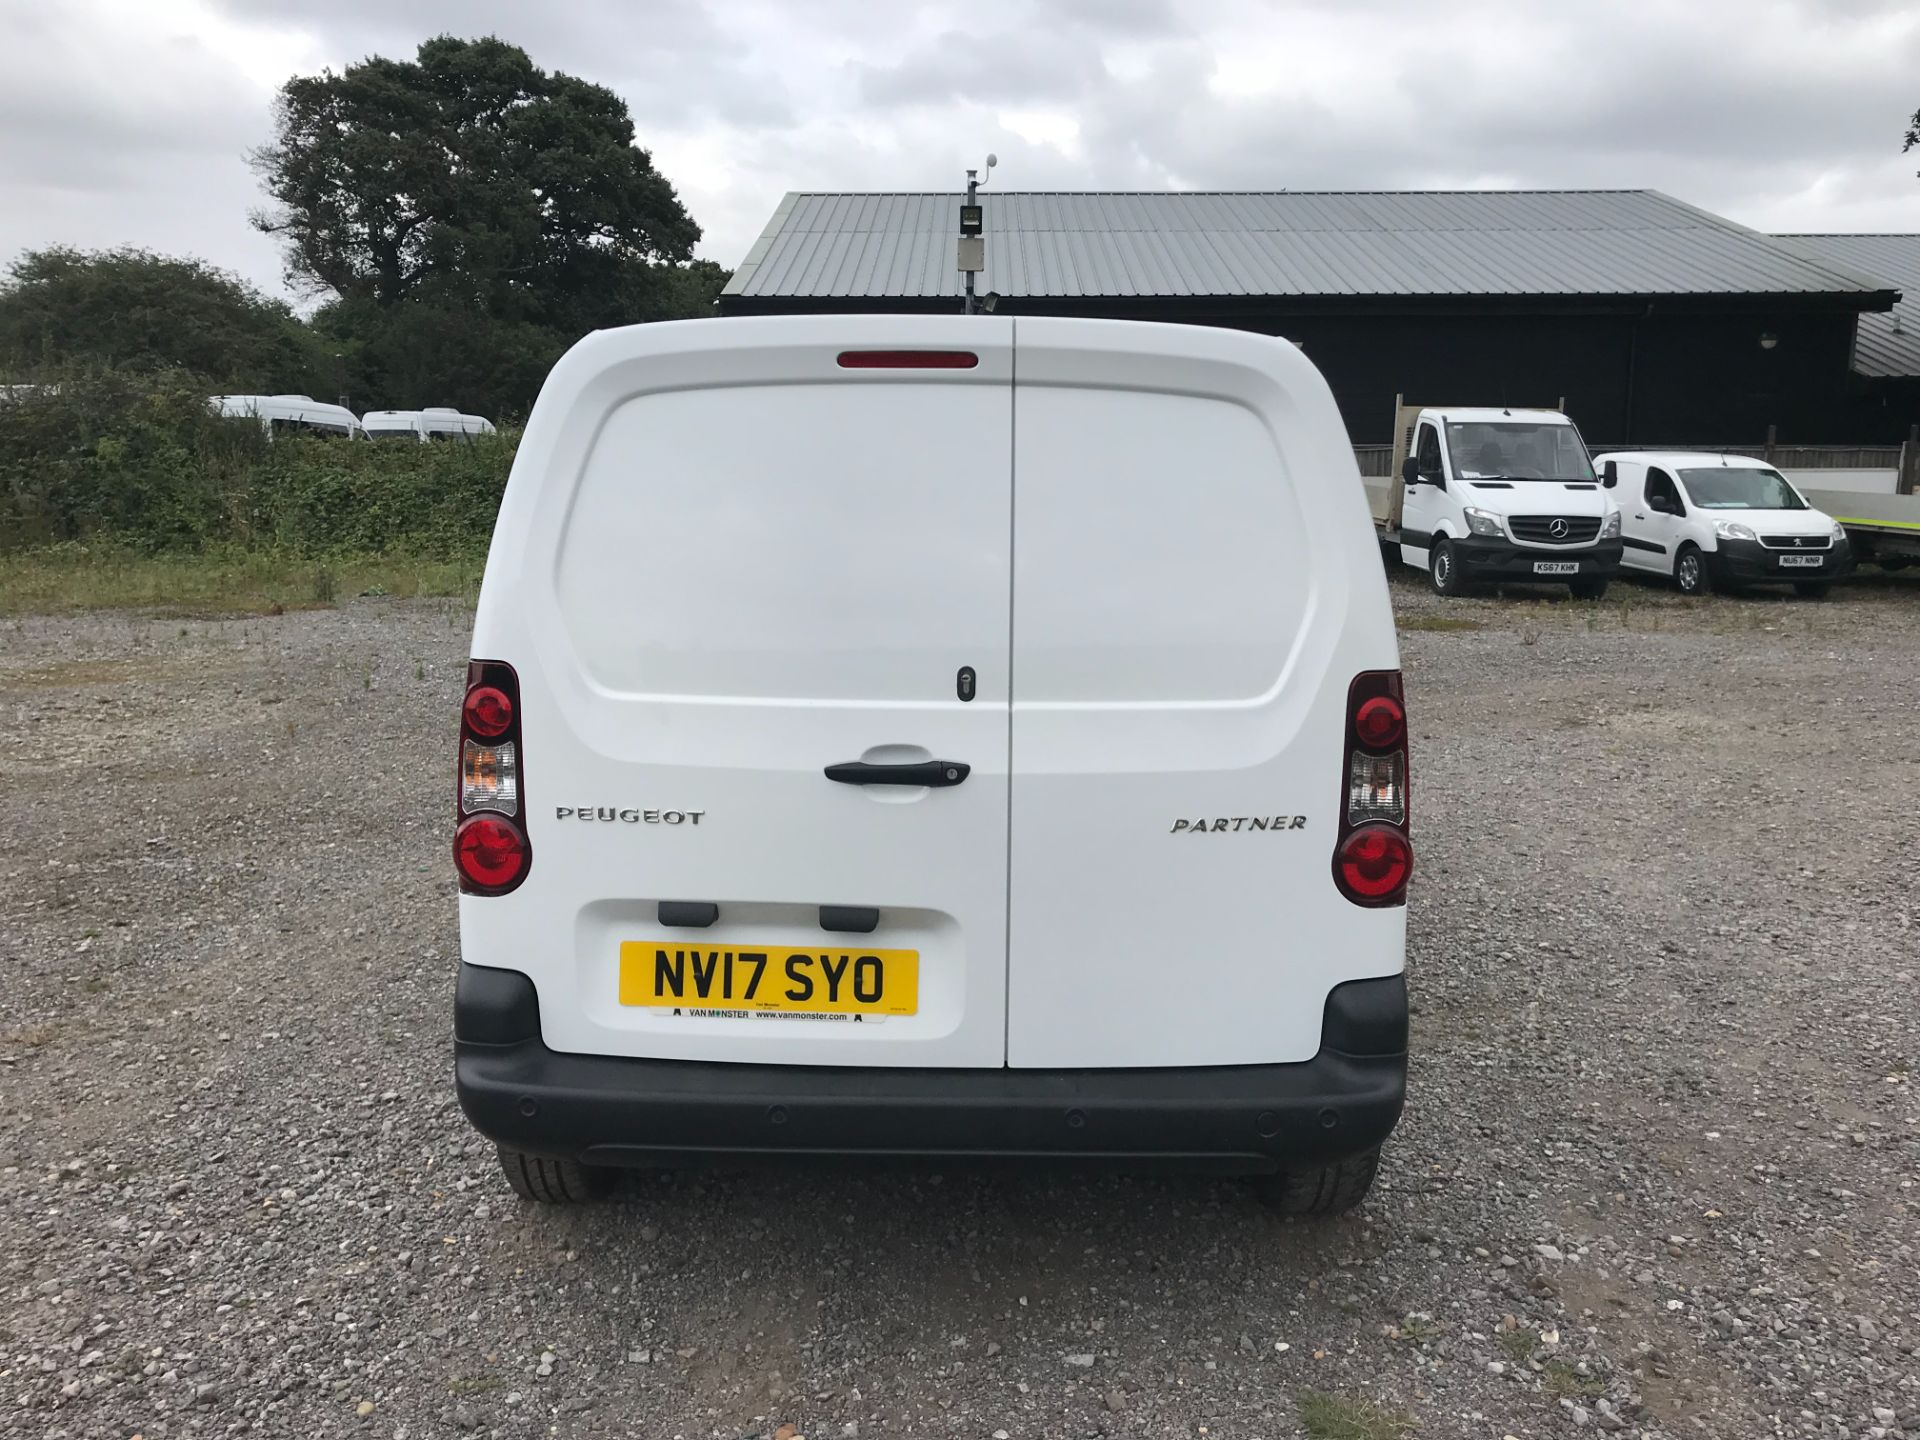 2017 Peugeot Partner L1 850 1.6 BLUEHDI 100 PROFESSIONAL (NON S/S)EURO 6 *Limited to 70MPH* (NV17SYO) Image 5